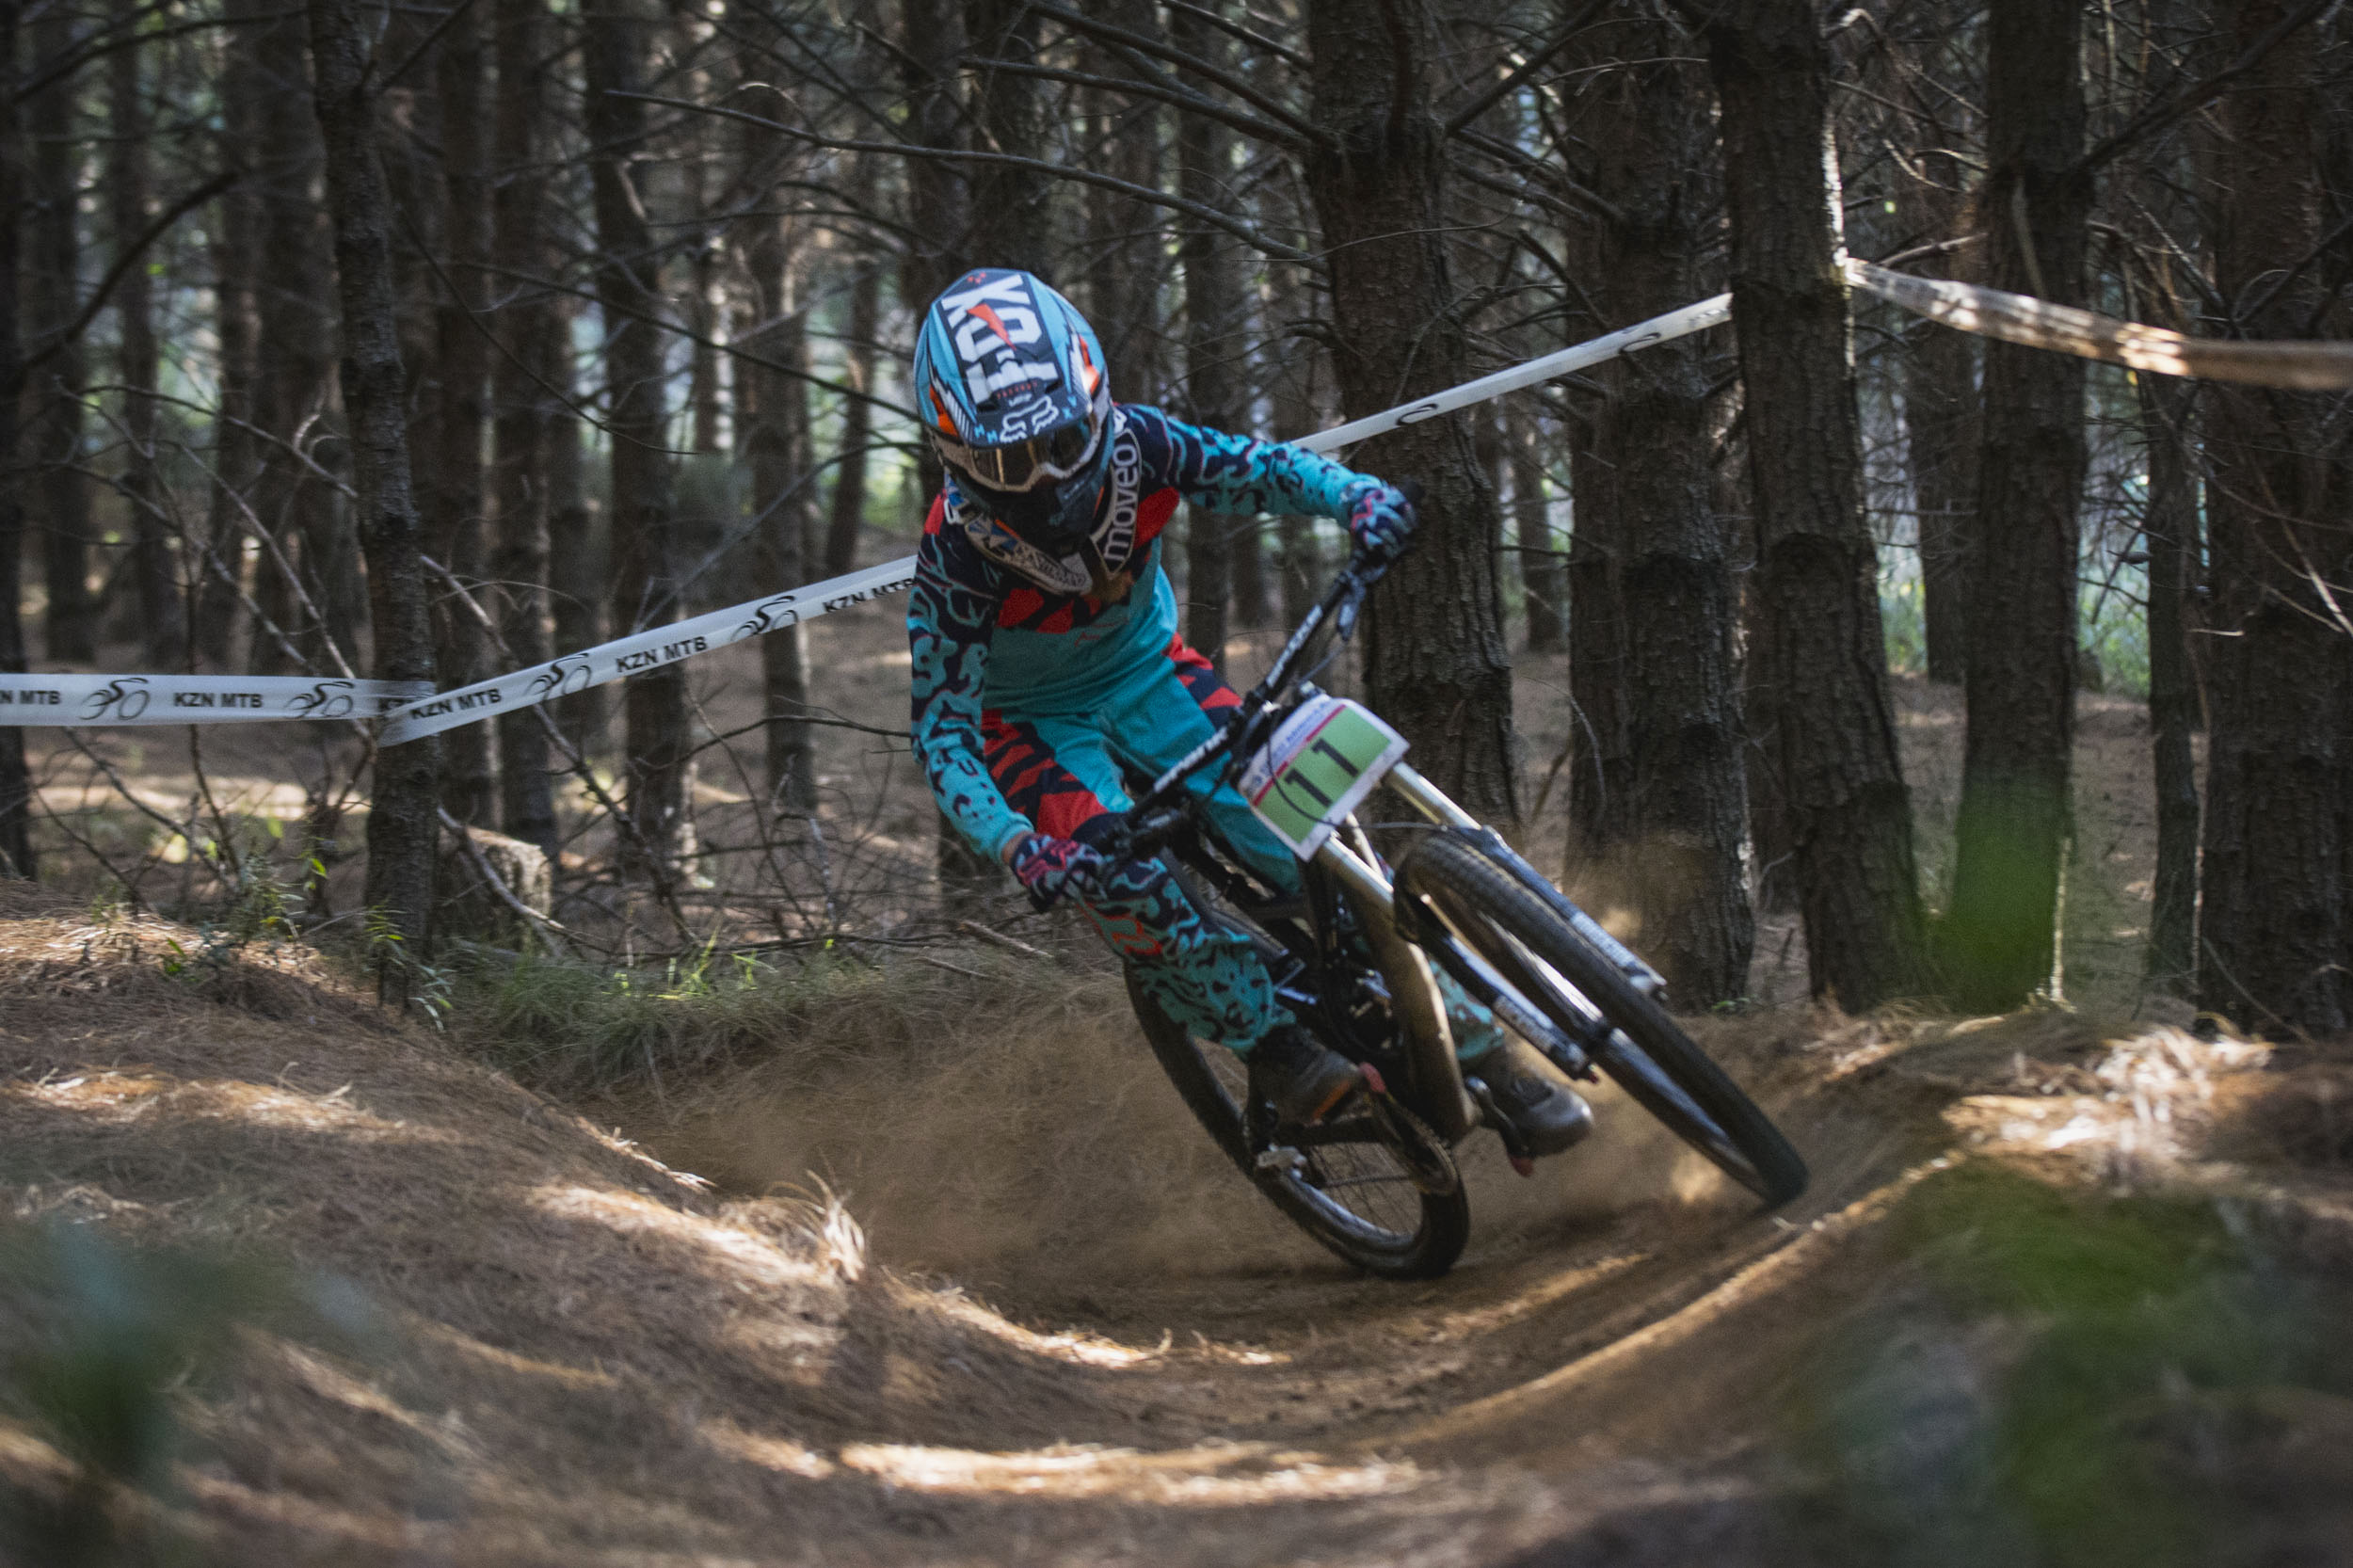 """Sabine """"Beani"""" Thies (riding for Greg Minnaar Cycles / Pizzology Craft Café / Foxhead South Africa)took the Overall and Sub Junior Women's victory at the third round of the 2016 KZNMTB Provincial Downhill Series – presented by Greg Minnaar Cycles, on Sunday 22 May, which doubled as the fourth round of the 2016 SA National DHI Cup Series.Photo credit: Andrew McFadden/BOOGS Photography"""